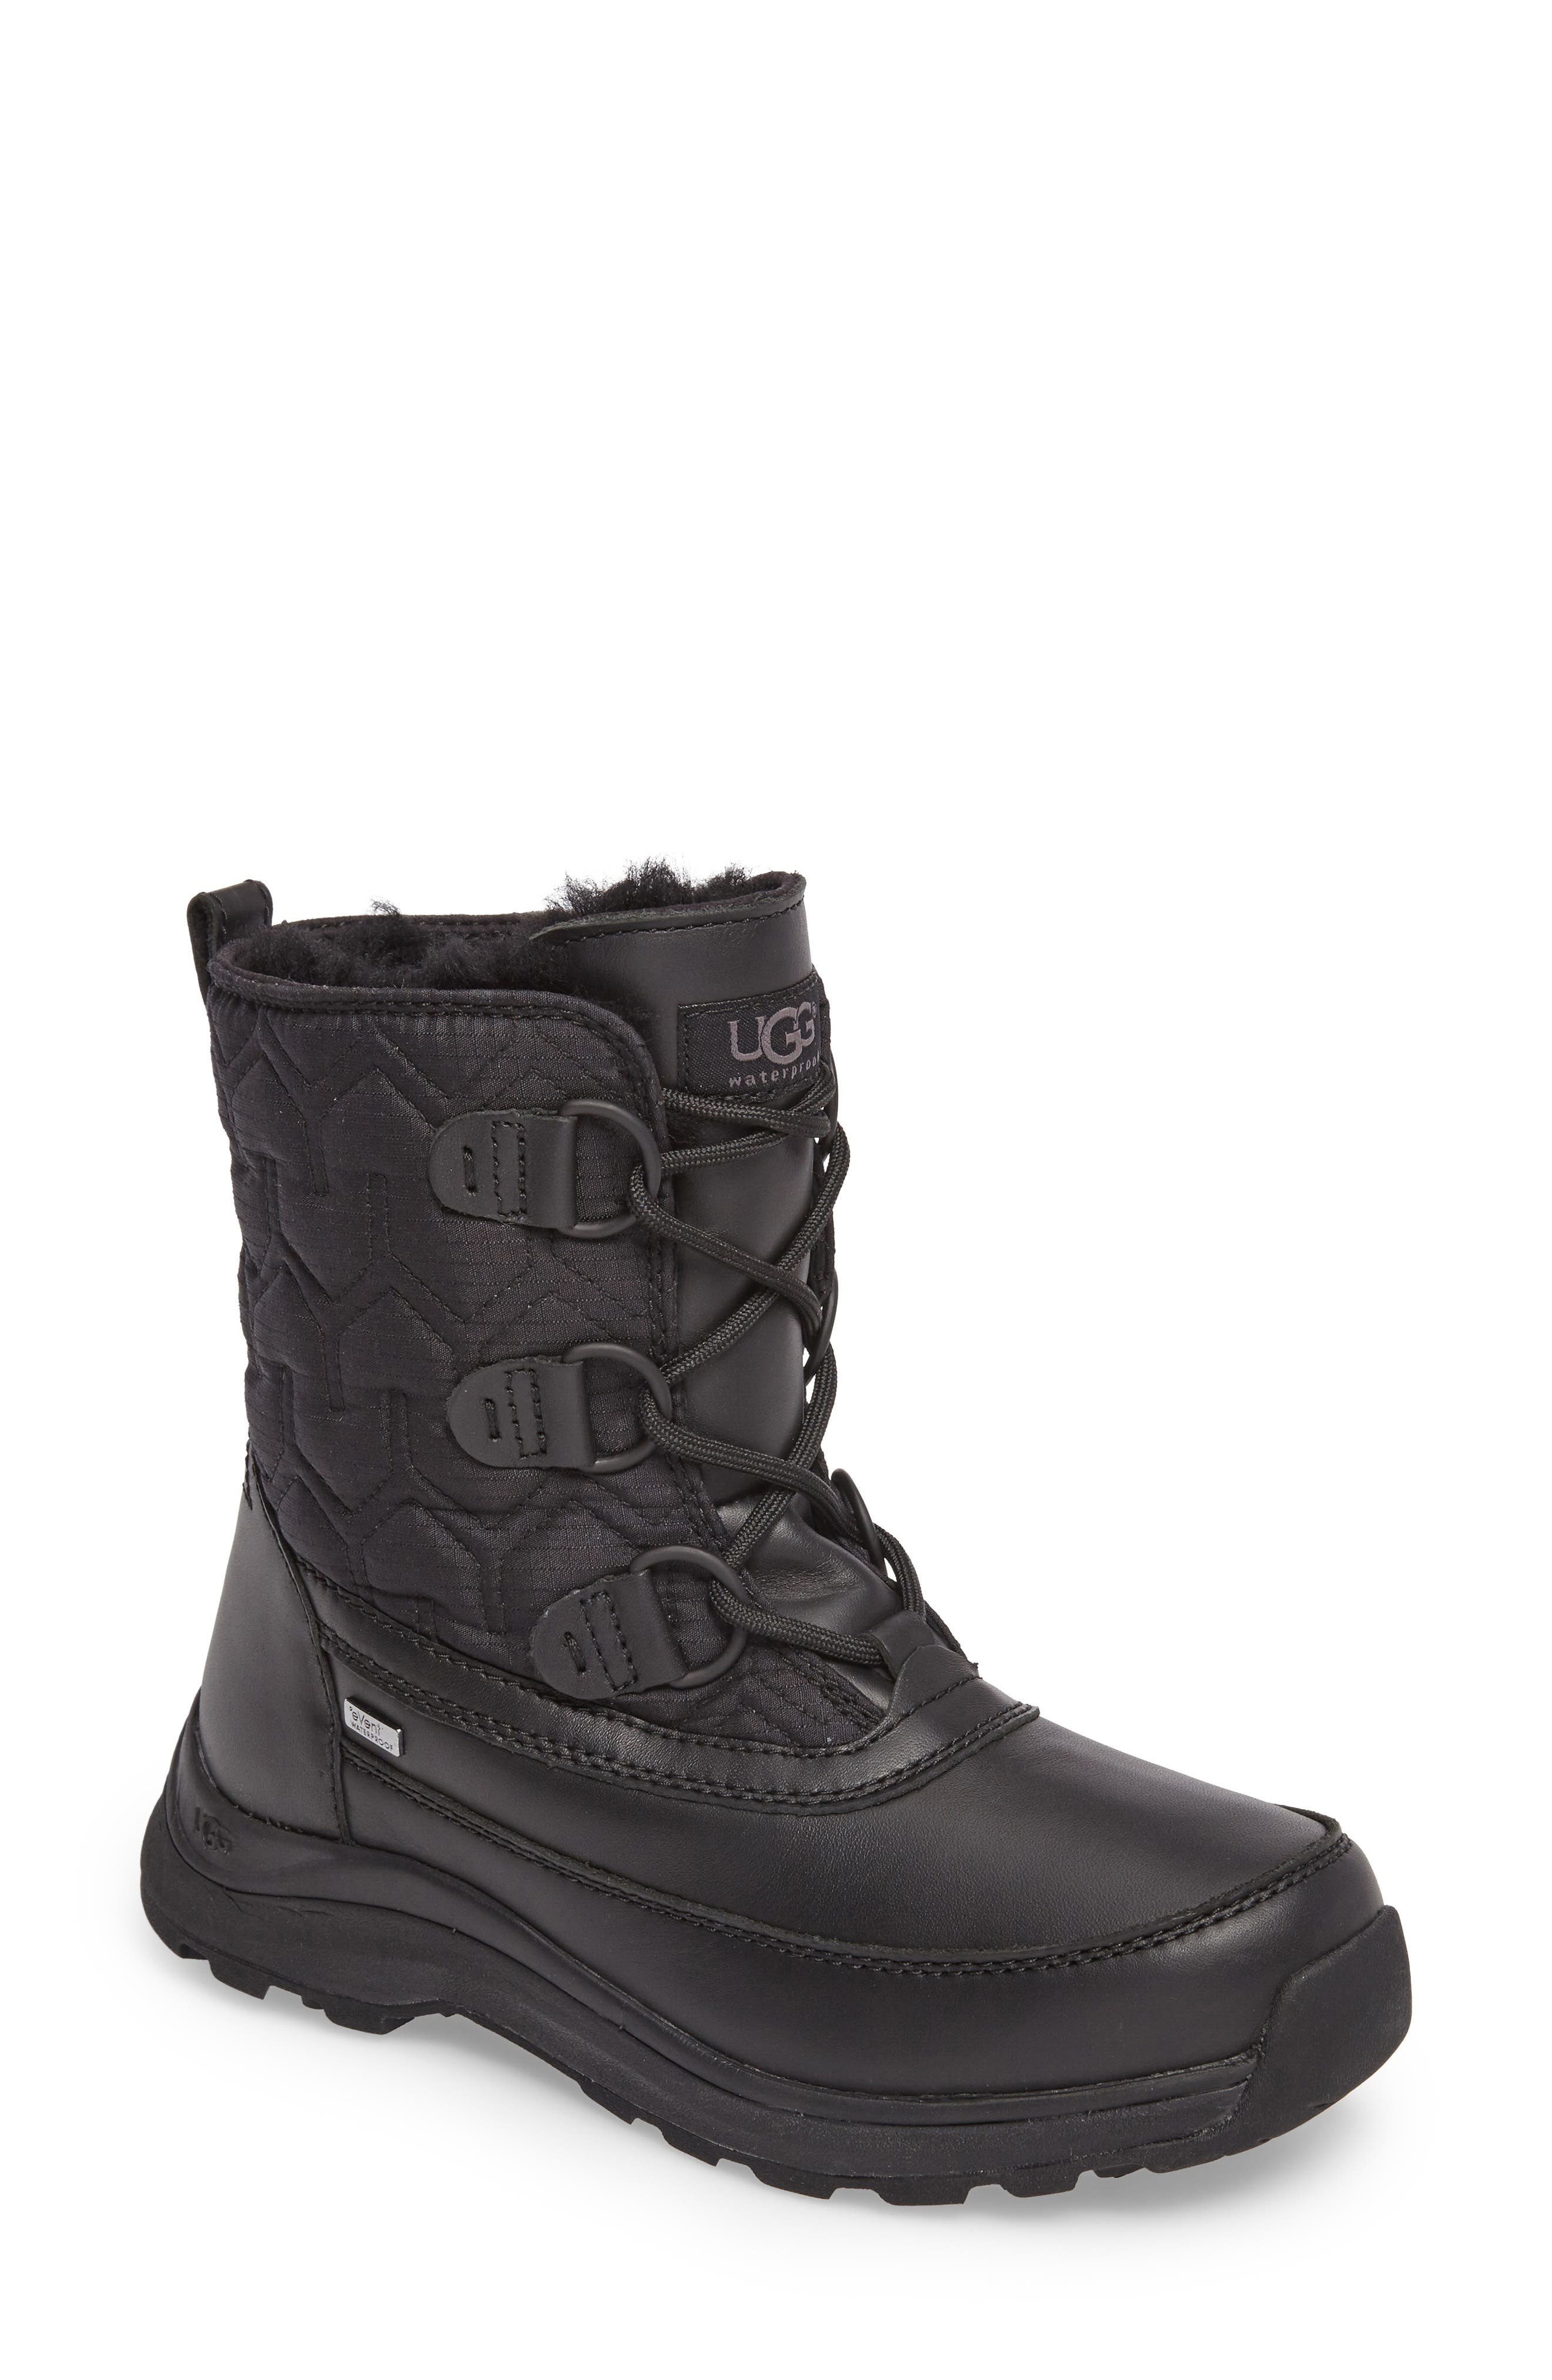 Alternate Image 1 Selected - UGG® Lachlan Waterproof Insulated Snow Boot (Women)